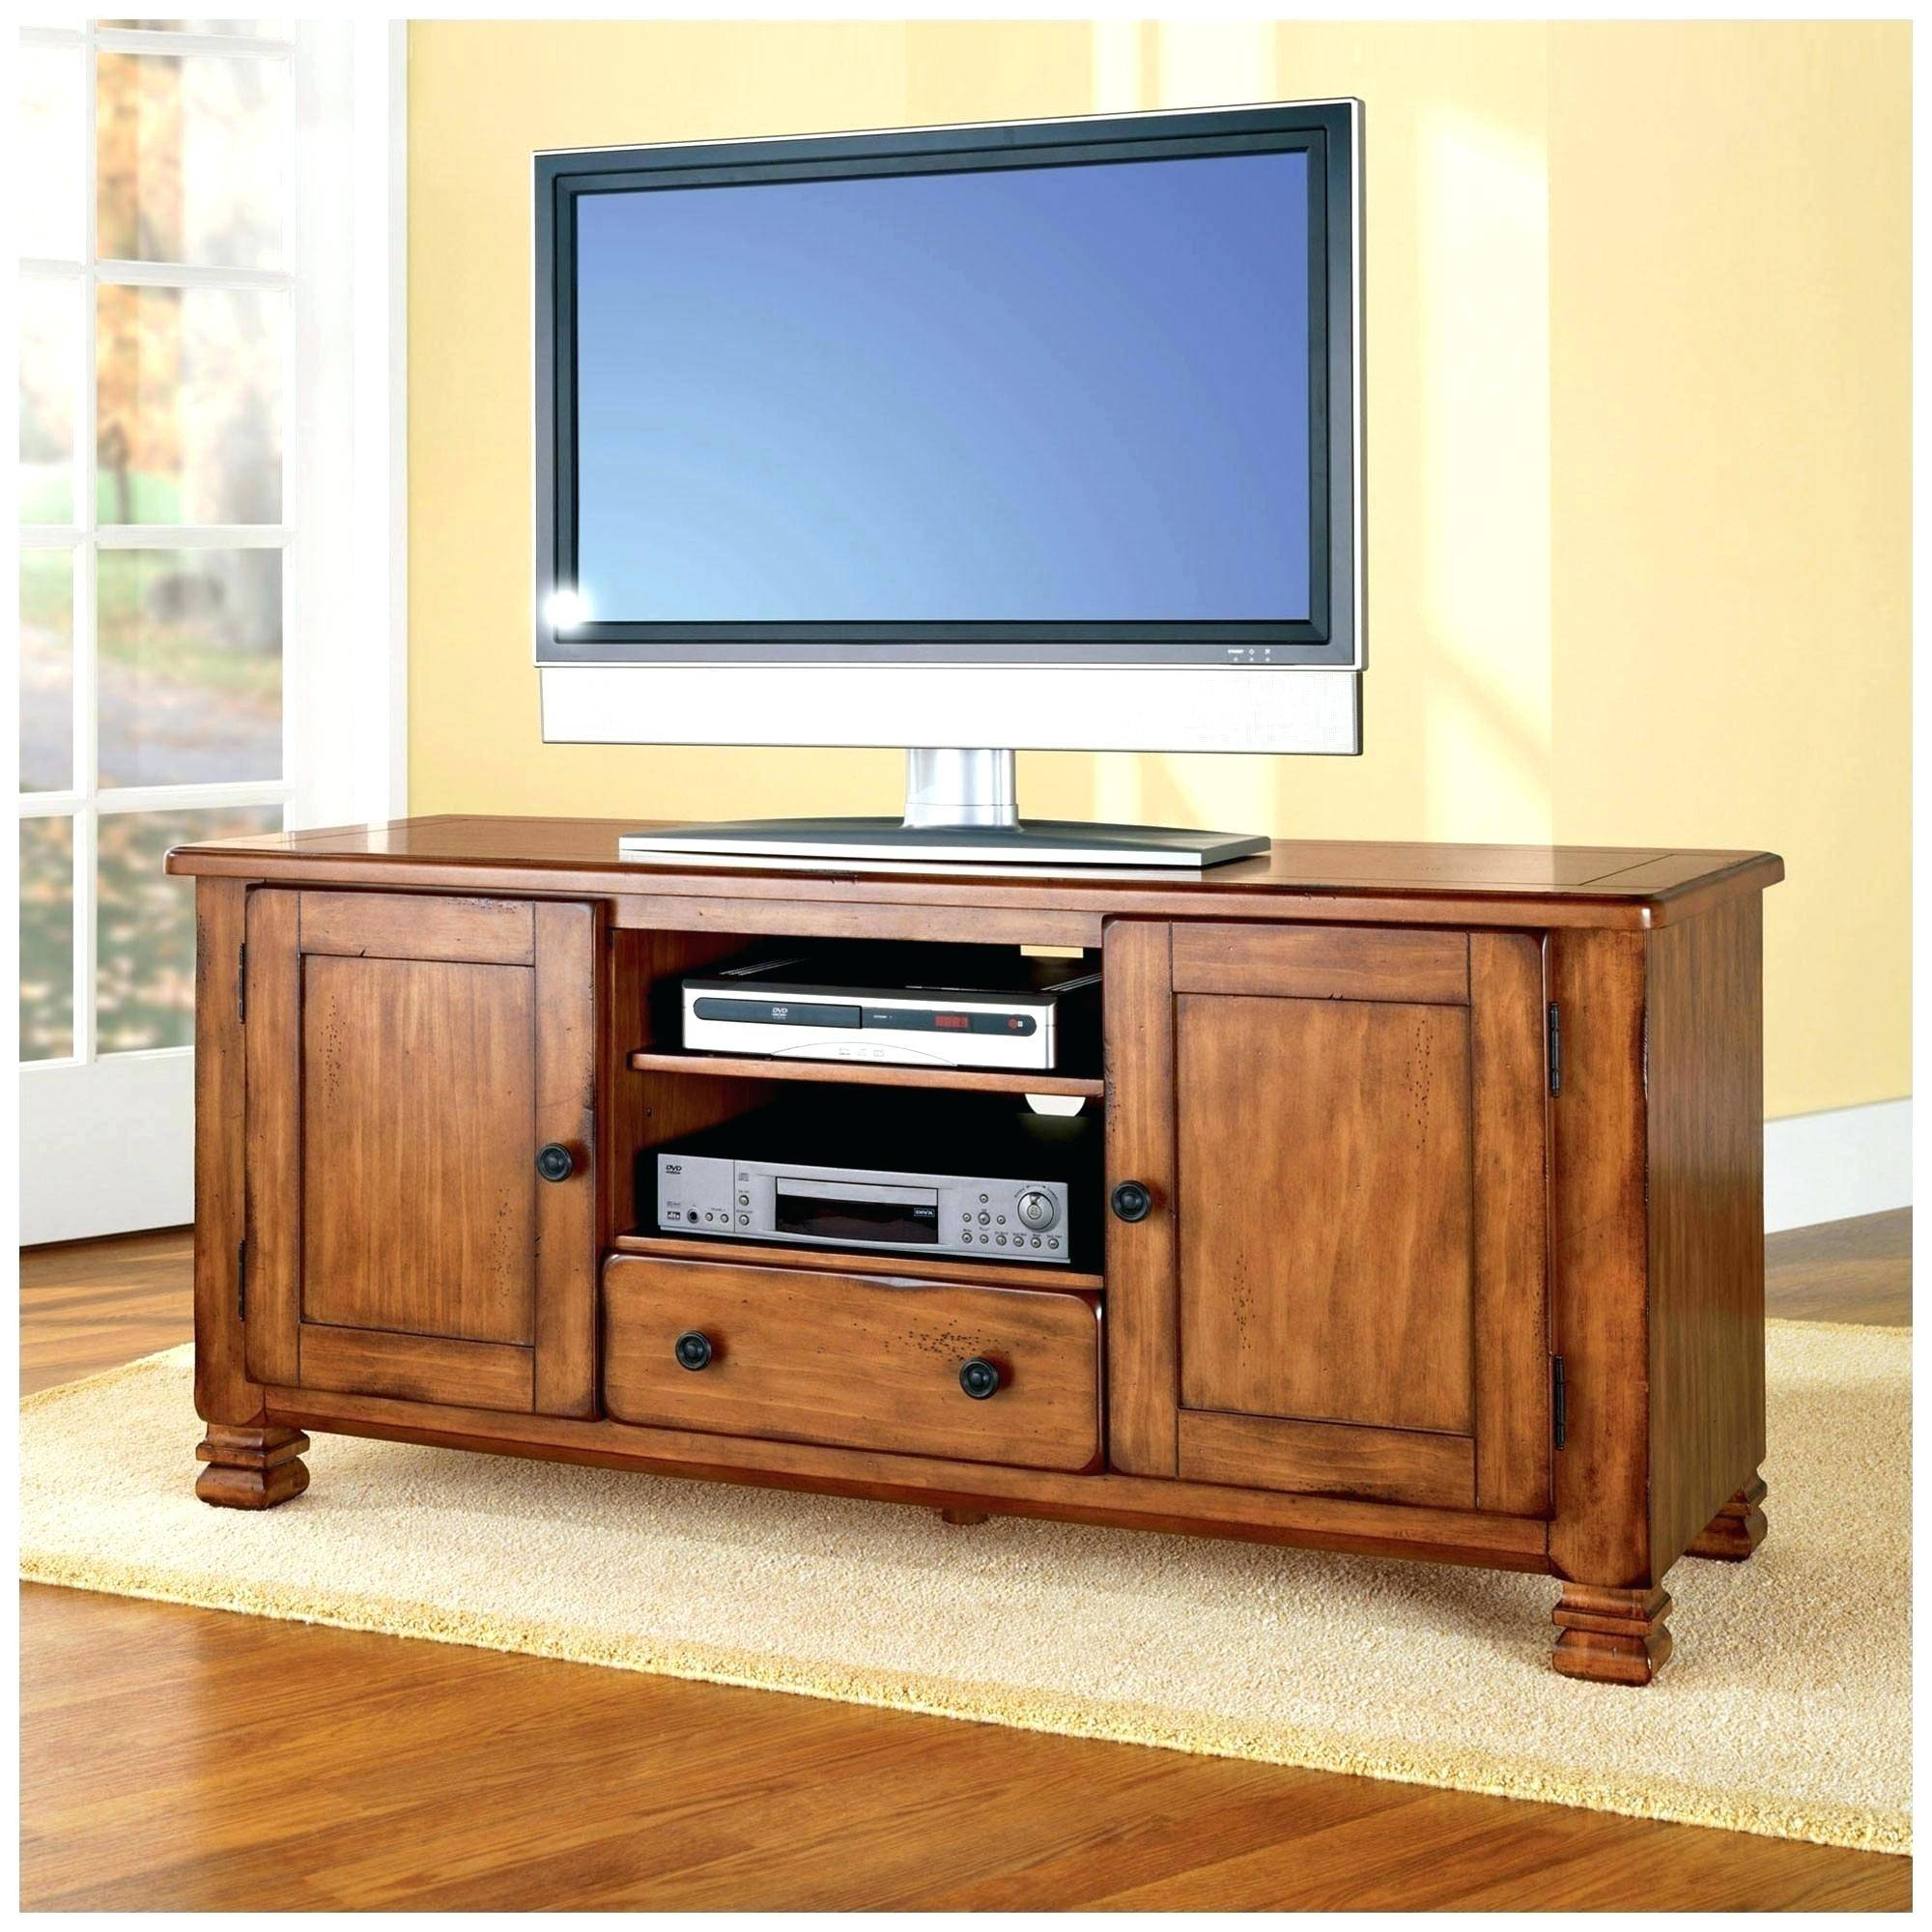 Tv Stand : Simple Antique Wooden Tv Stand For Living Room inside Cherry Wood Tv Cabinets (Image 14 of 15)